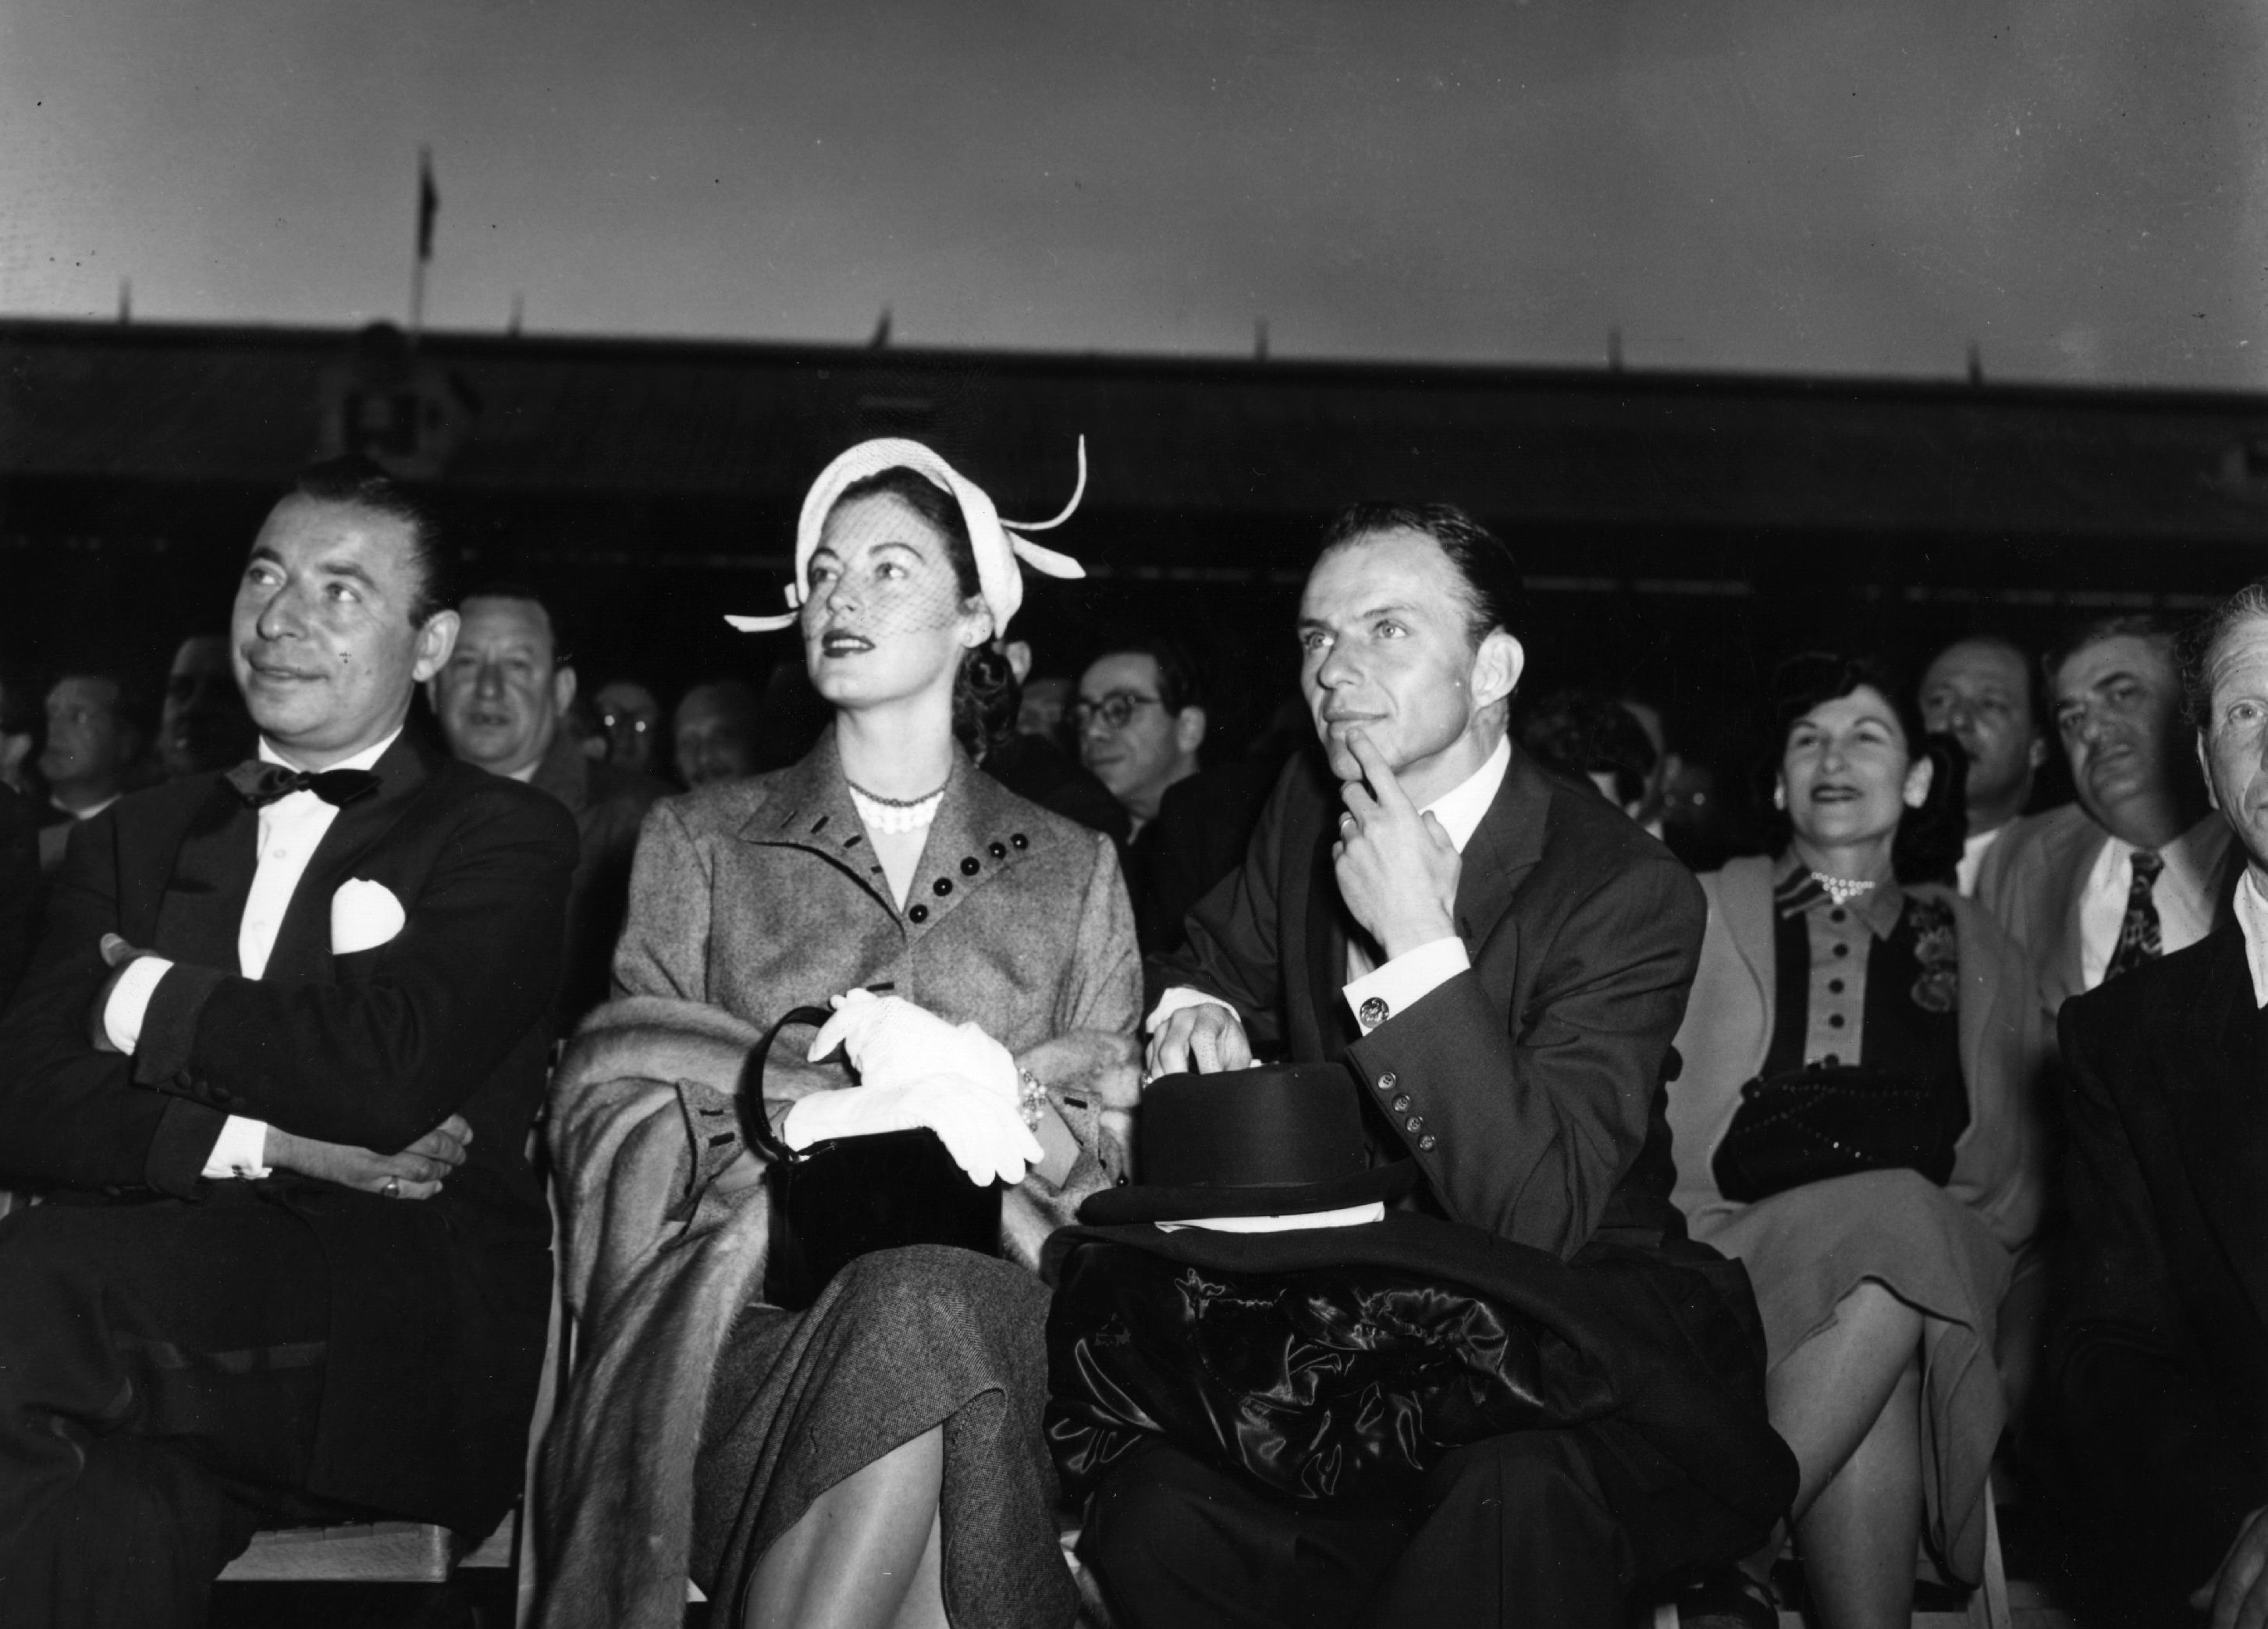 9th June 1953: Actress Ava Gardner, actor and singer Frank Sinatra (right) and band leader Joe Loss in the front row at White City Stadium to watch Randolph Turpin fight Charles Homez for the World Middleweight Boxing title. (Photo by Topical Press Agency/Getty Images)